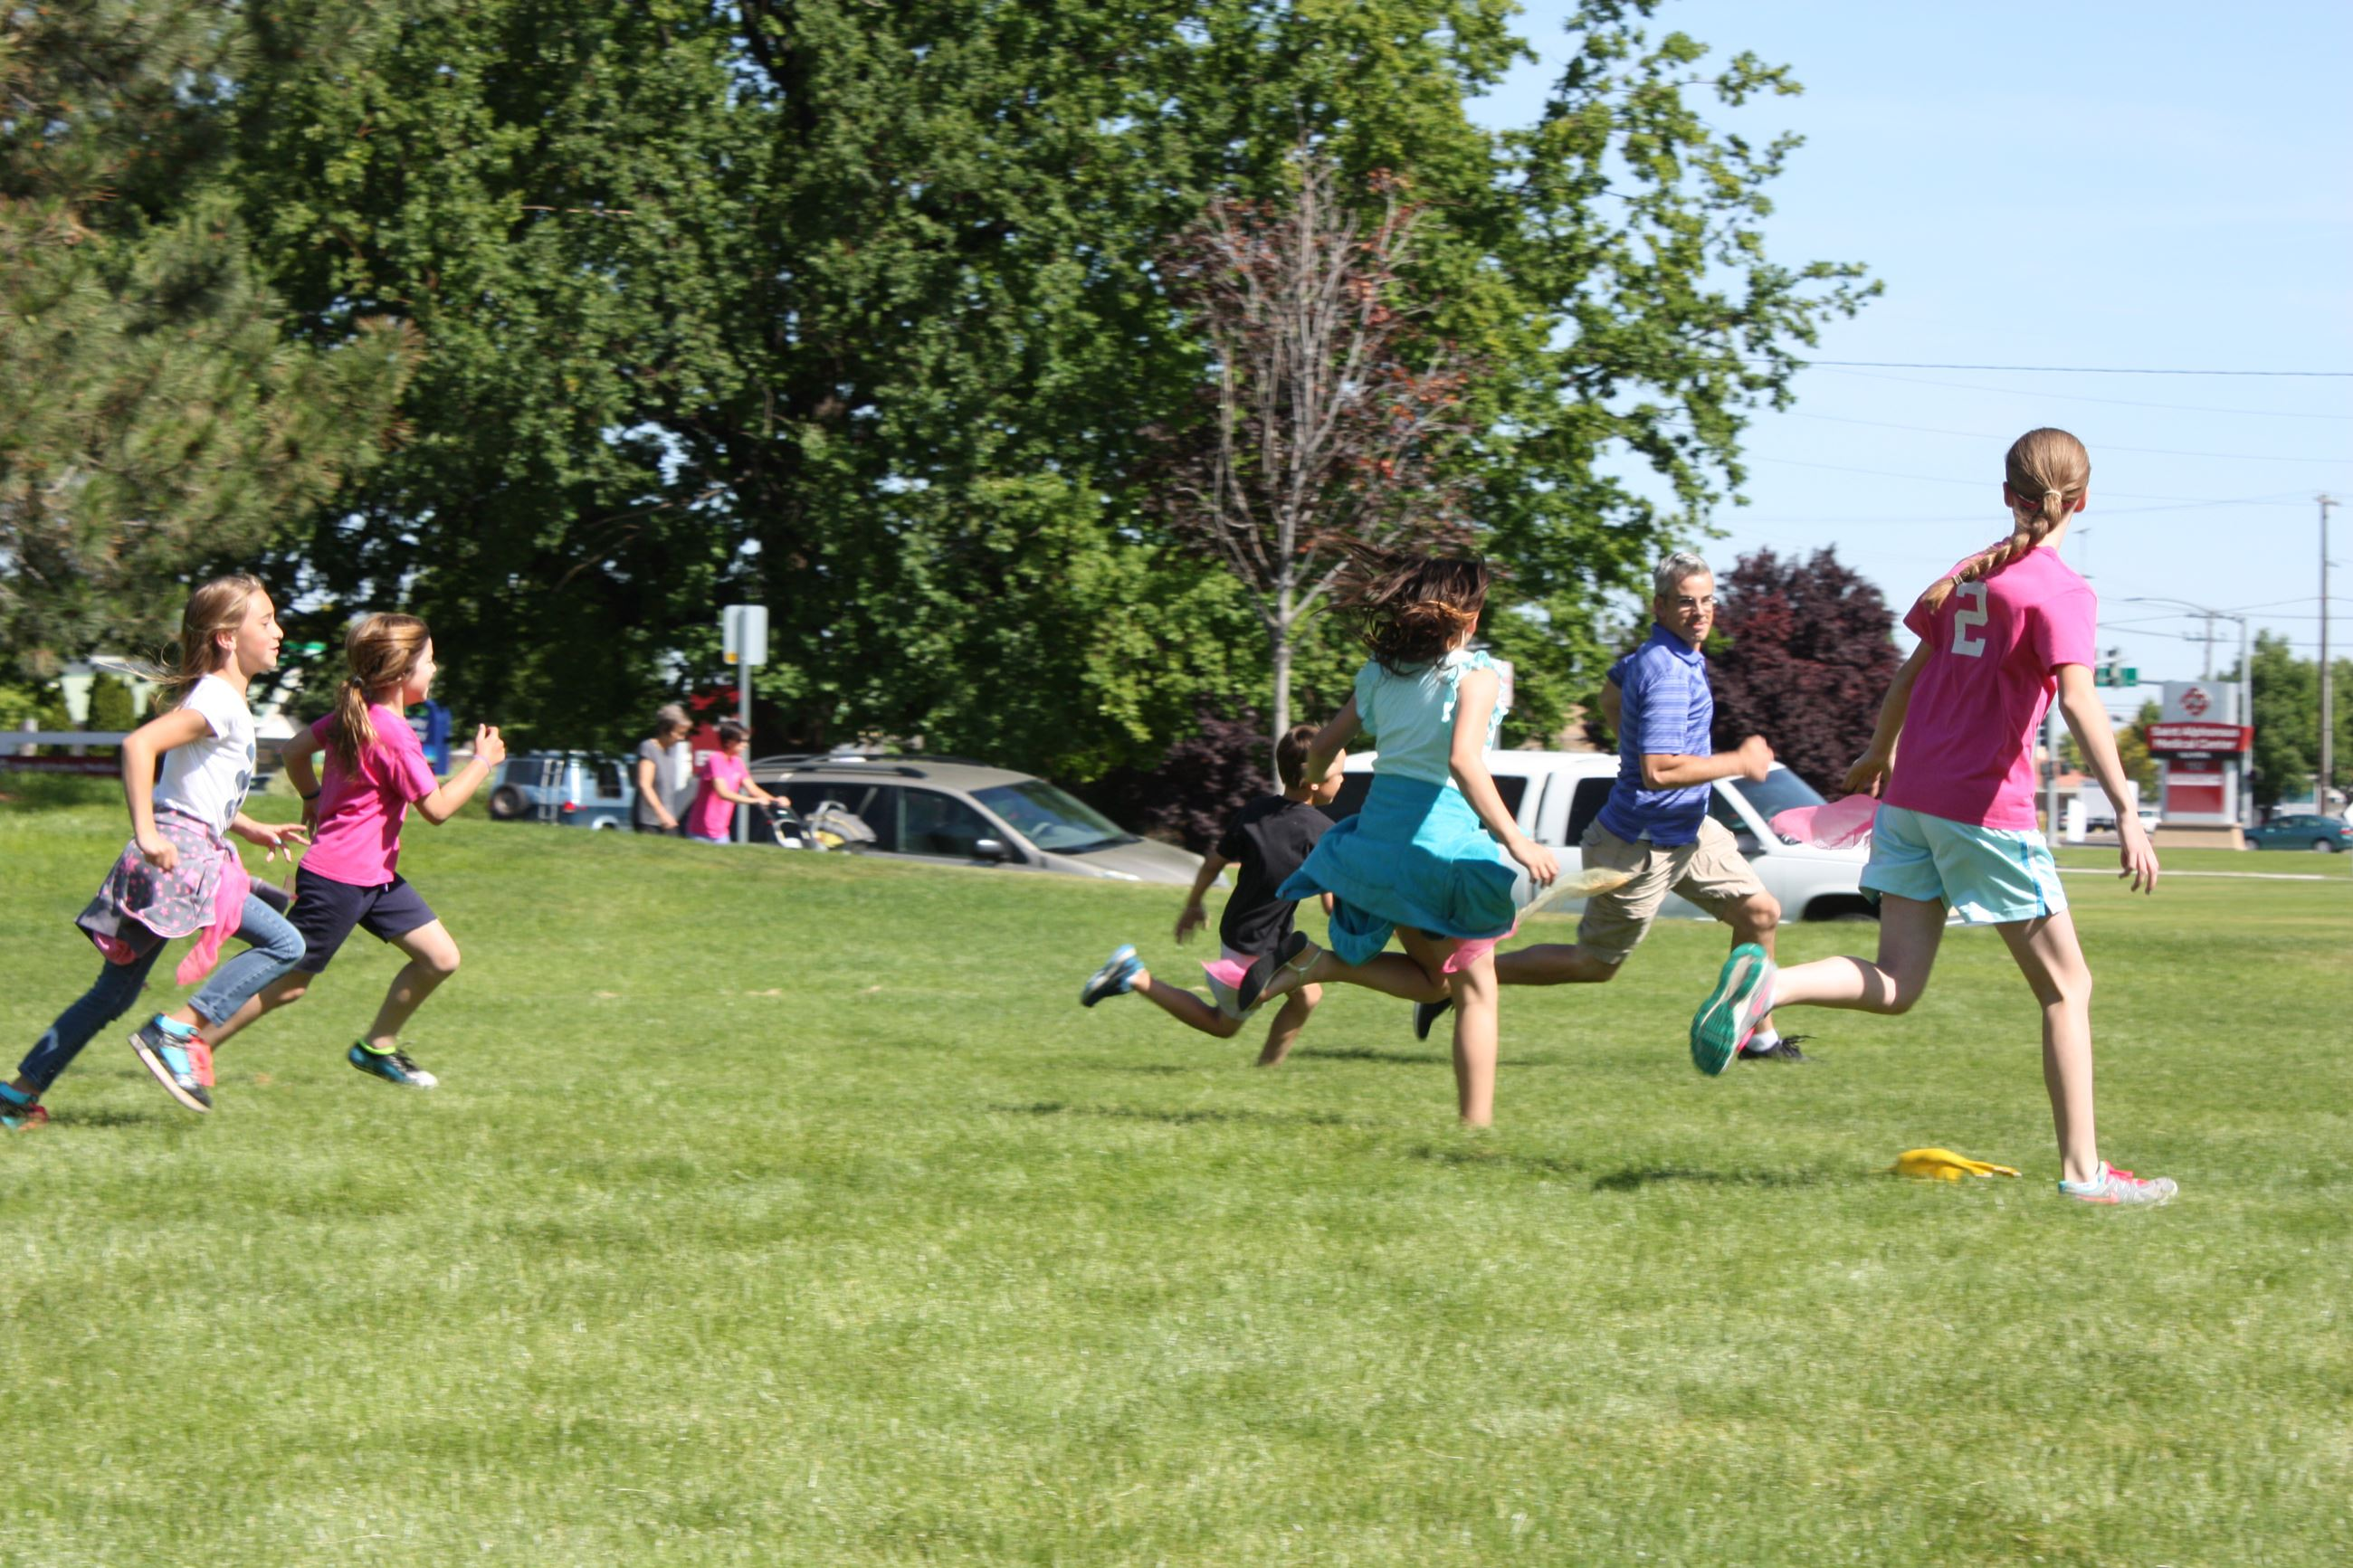 Children running on the grass at Traveling Playground